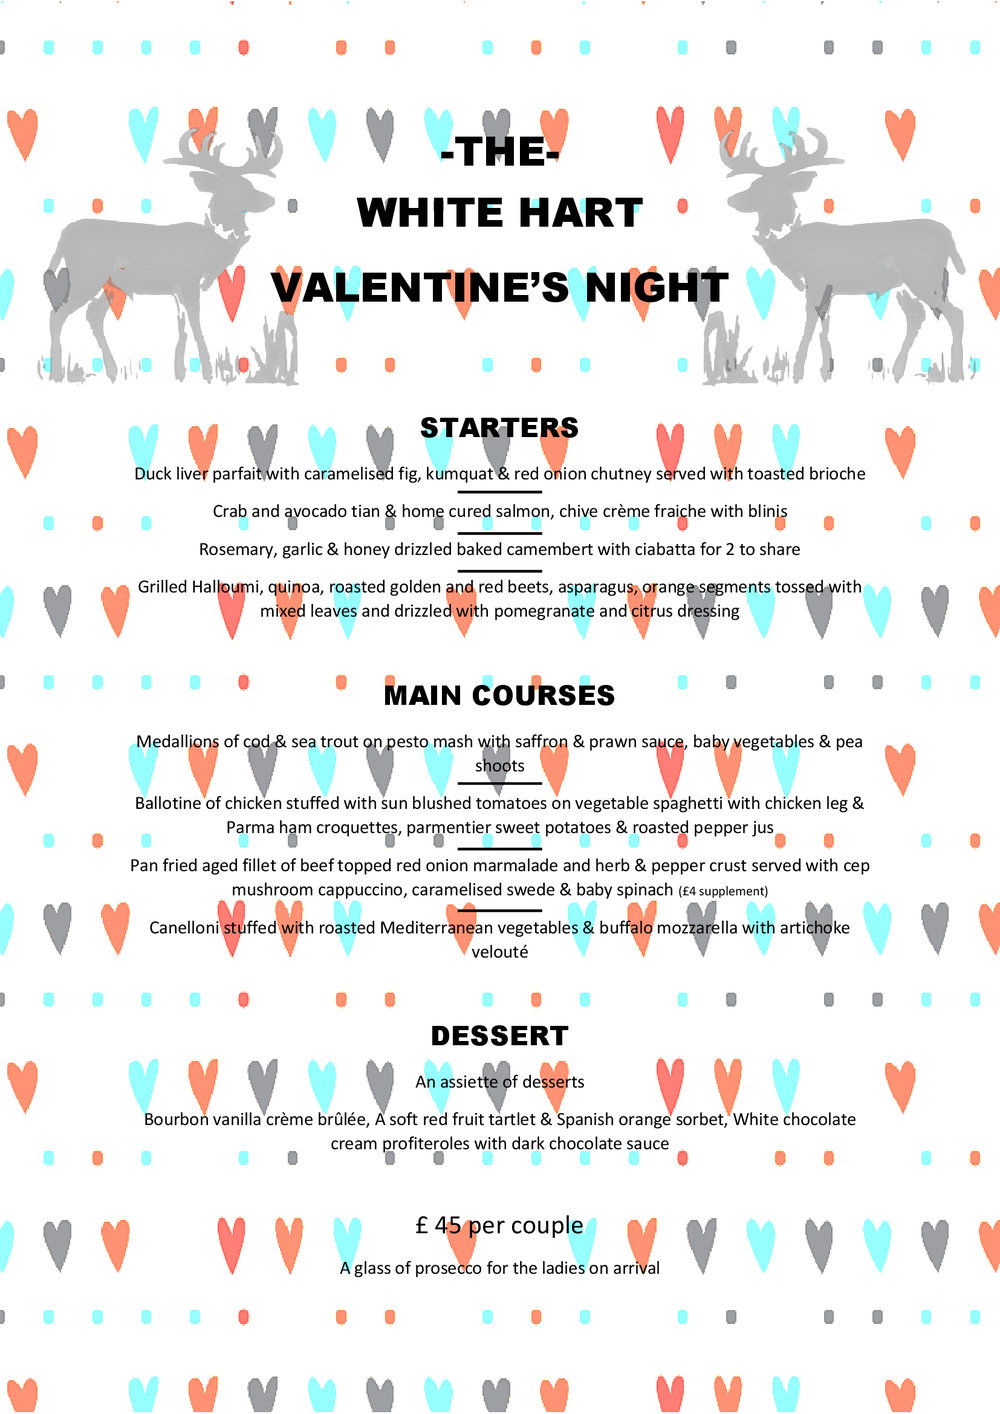 Valentines-Day-menu.jpg